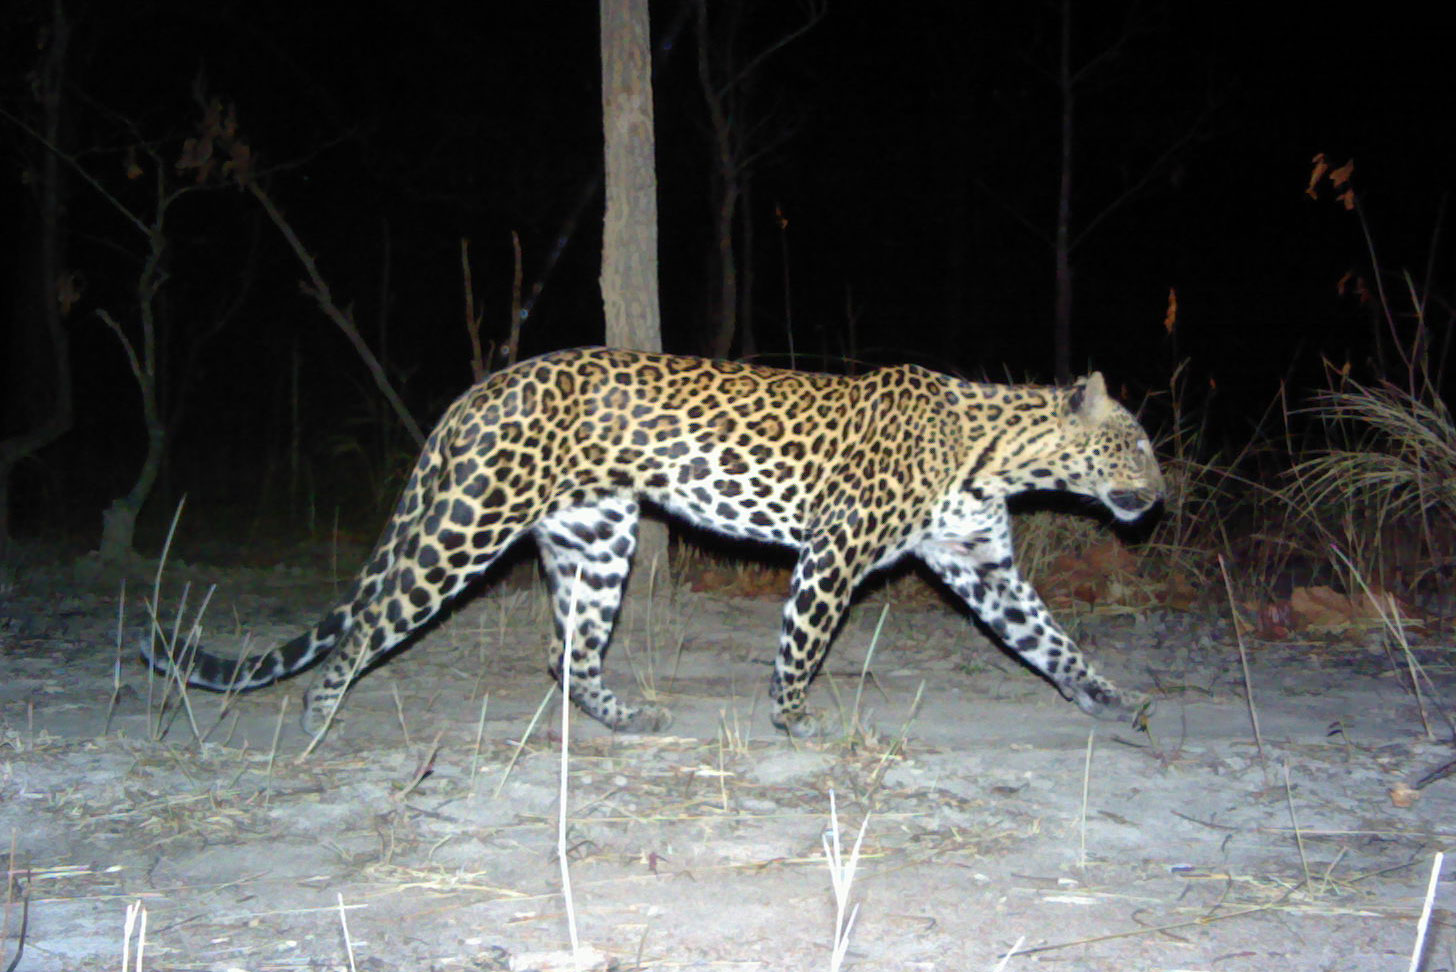 Indochinese leopard has disappeared from 94% of its historical range